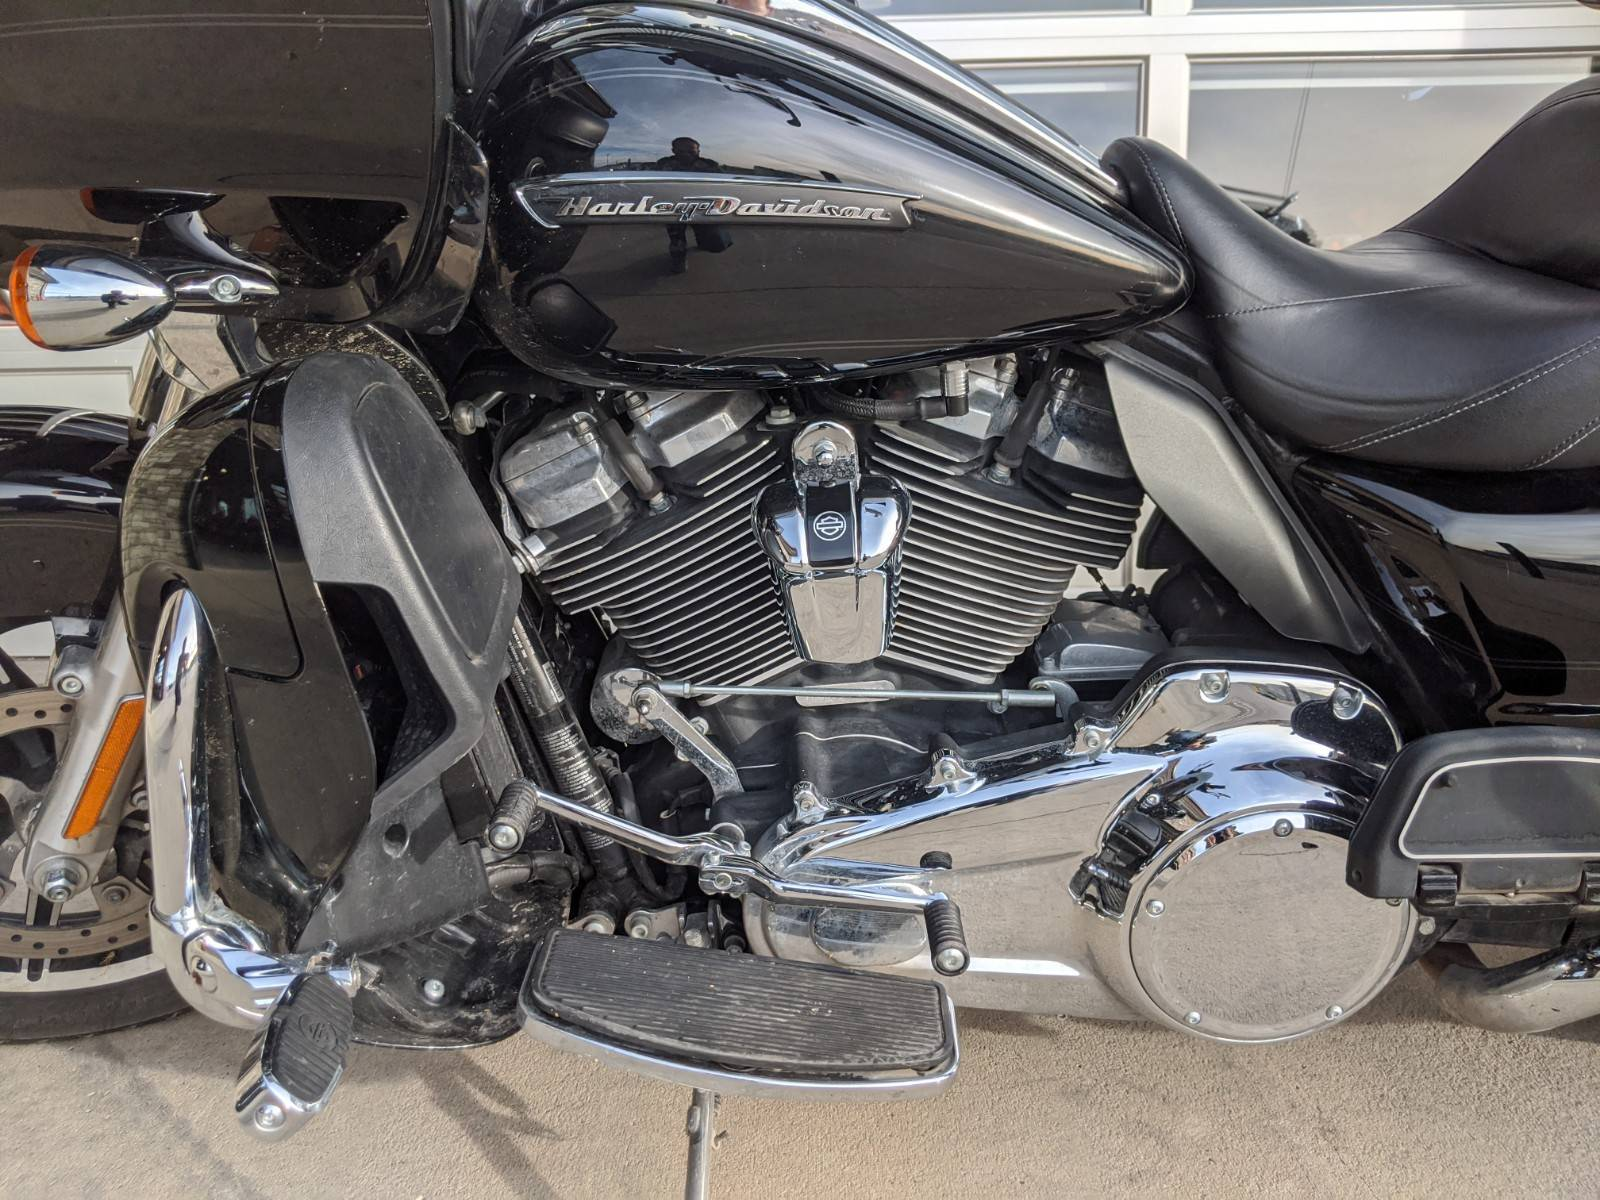 2018 Harley-Davidson Road Glide® Ultra in Rapid City, South Dakota - Photo 6